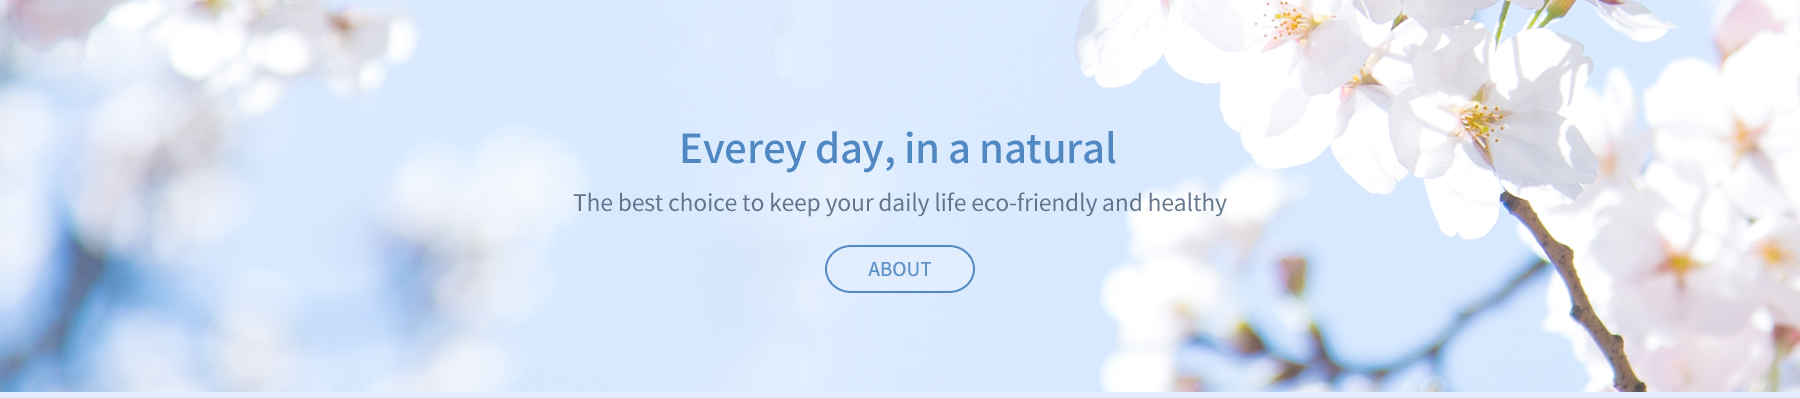 Everey day, in a natural. The best choice to keep your daily life eco-friendly and healthy. 에코스타트 회사소개 바로가기